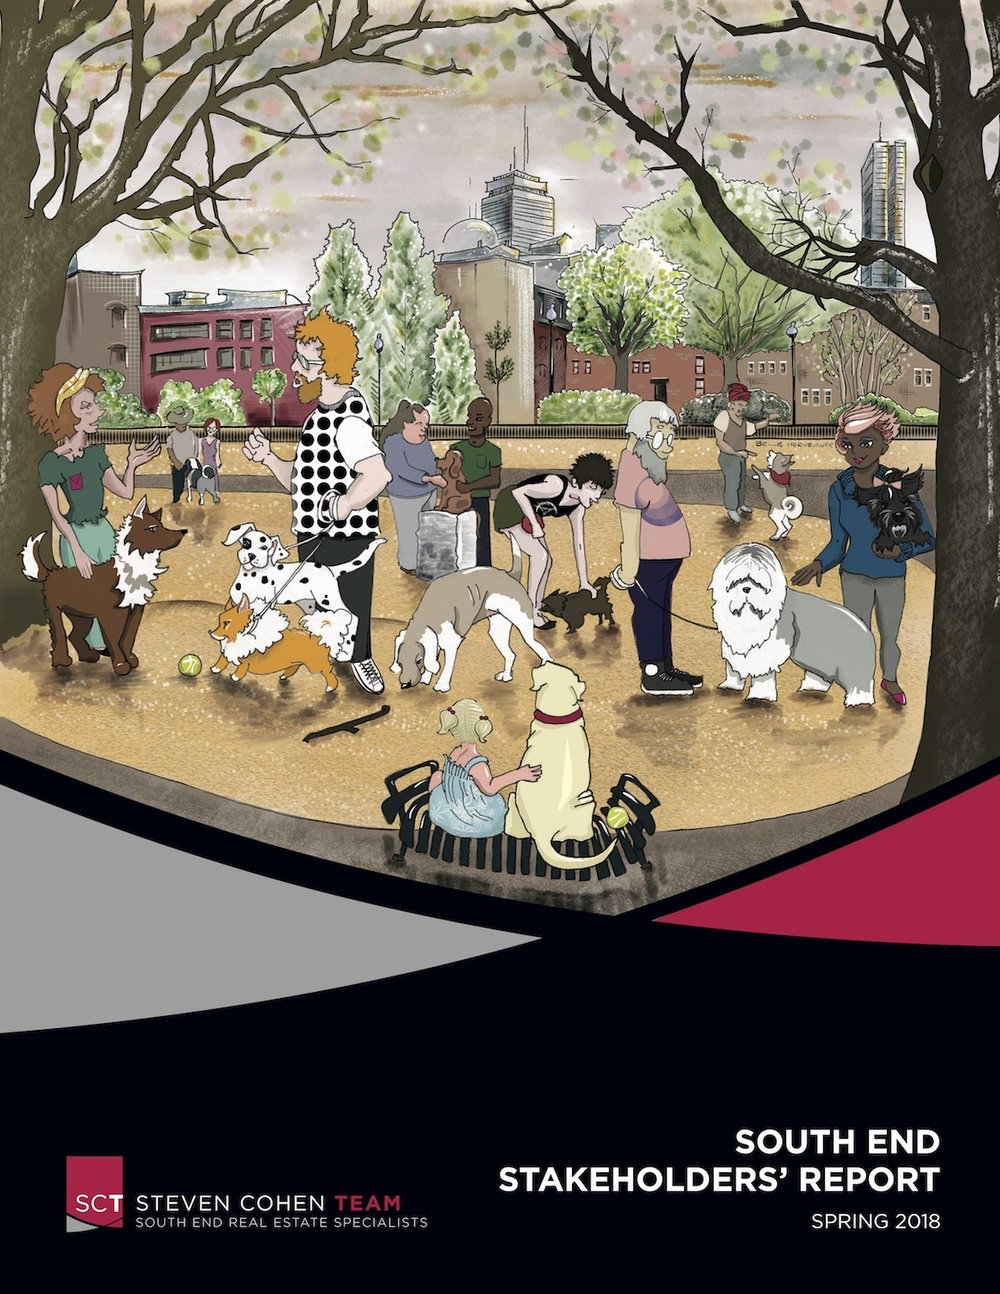 South End Stakeholders' Report Spring 2018.jpg